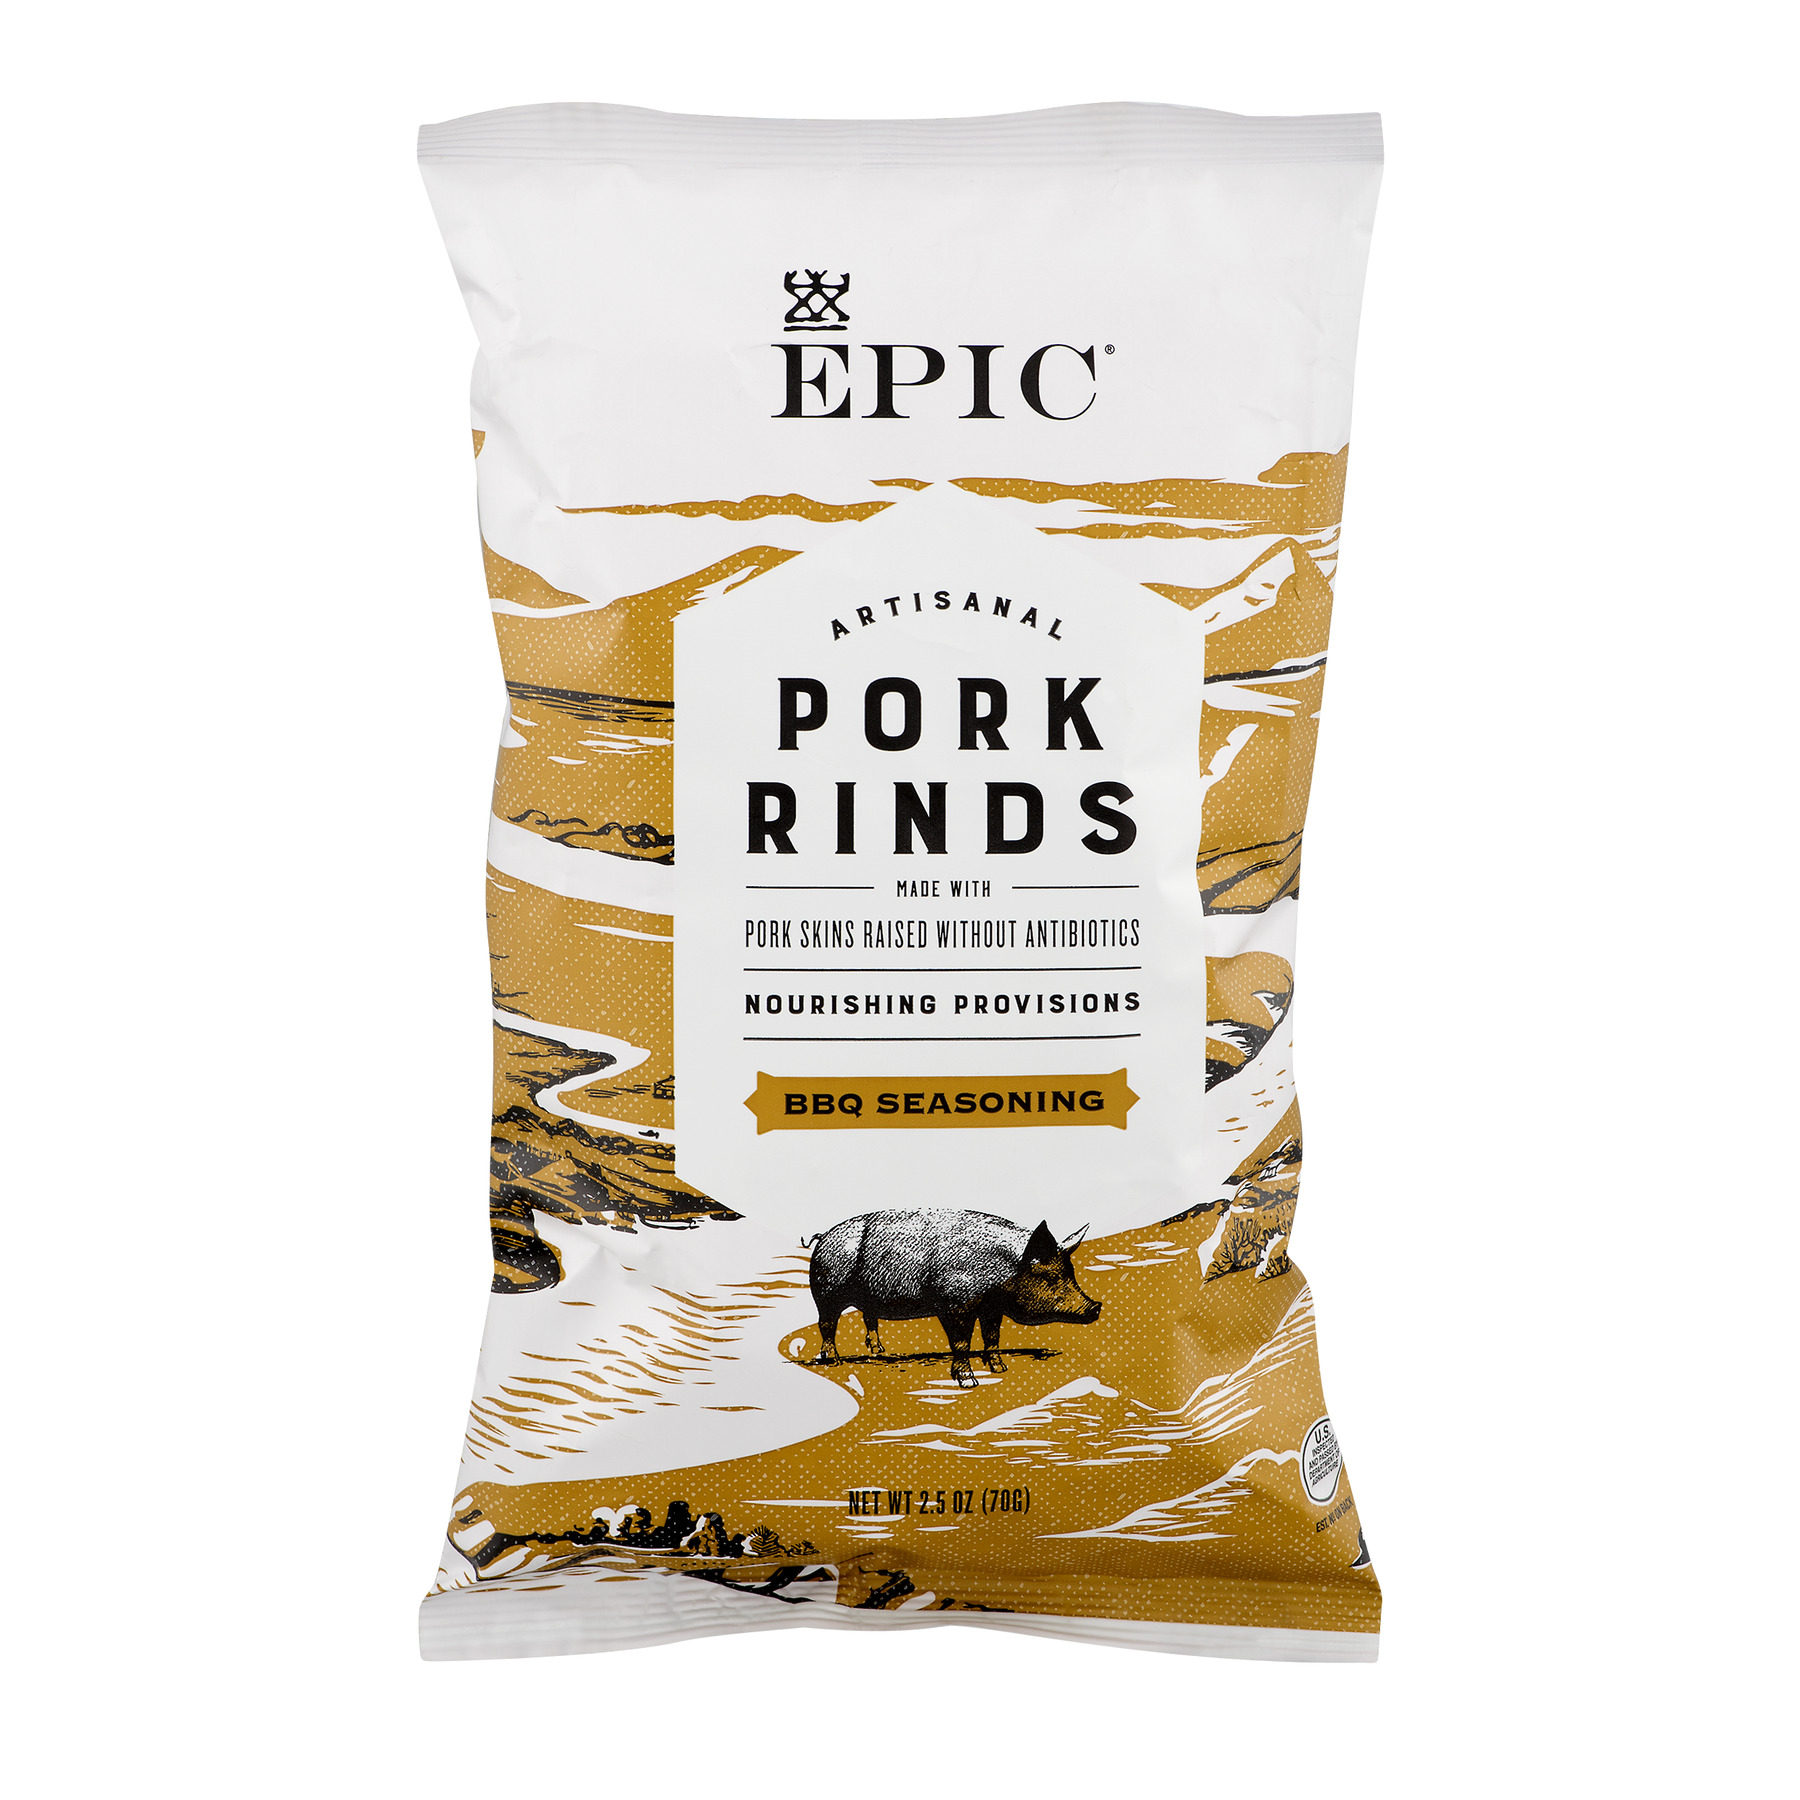 EPIC Provisions Texas BBQ Flavored Pork Rinds 12ct 2.5 oz Bags